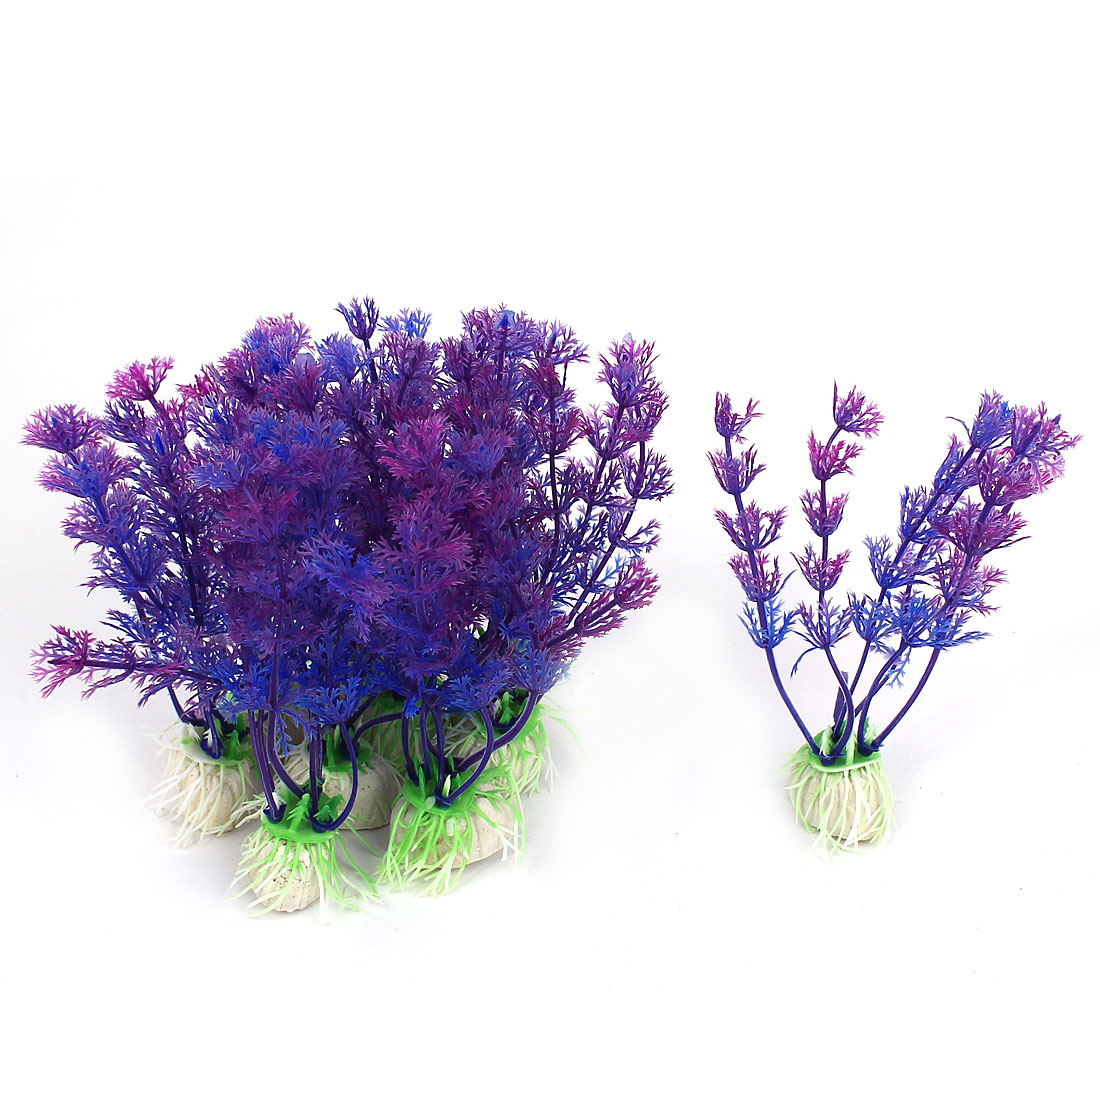 Fishbowl Landscaping Purple Plastic Emulational Aquarium Plant Aquatic Grass Decor w Ceramic Base 10pcs